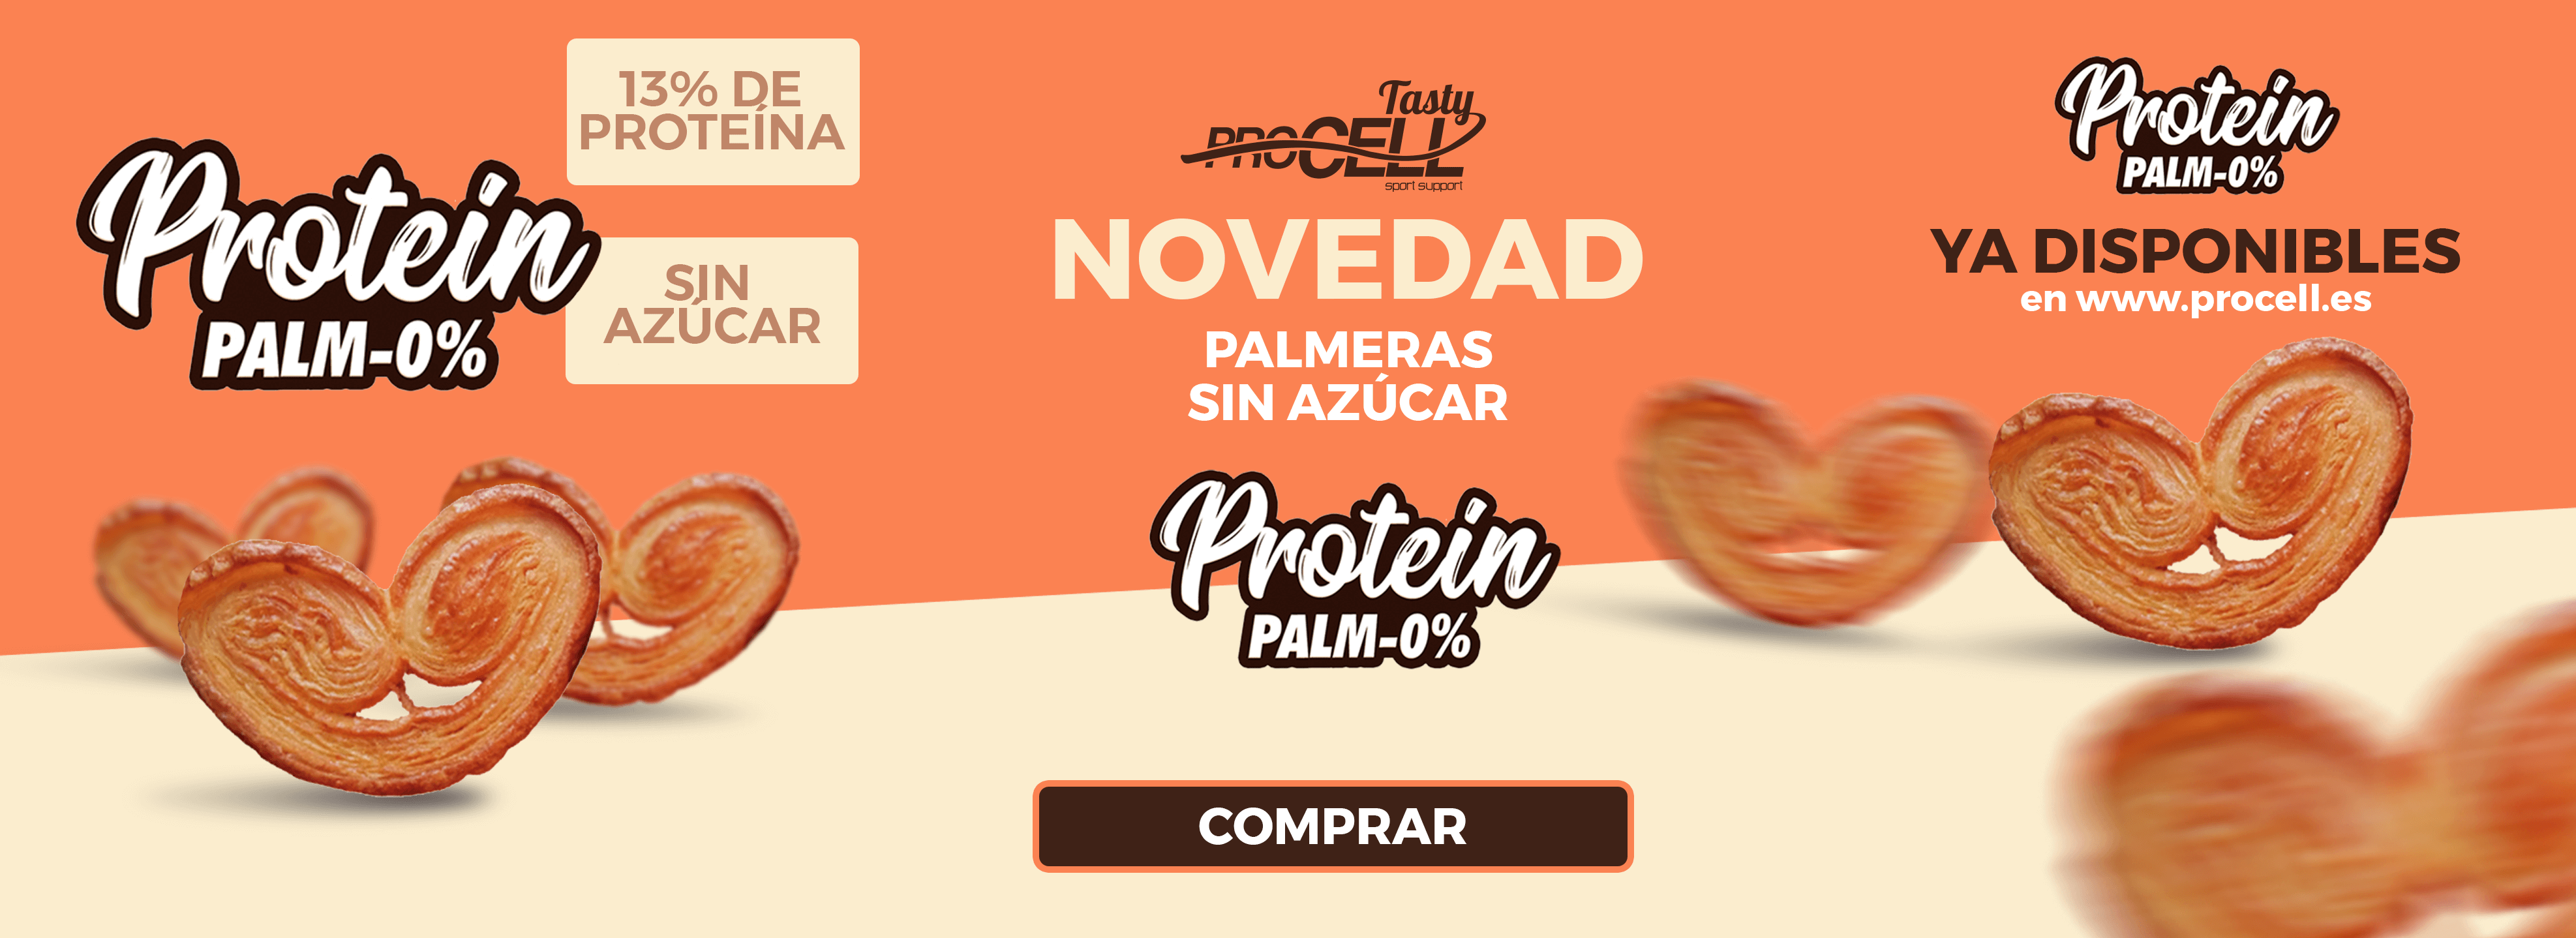 Palmeras fit proteicas Procell